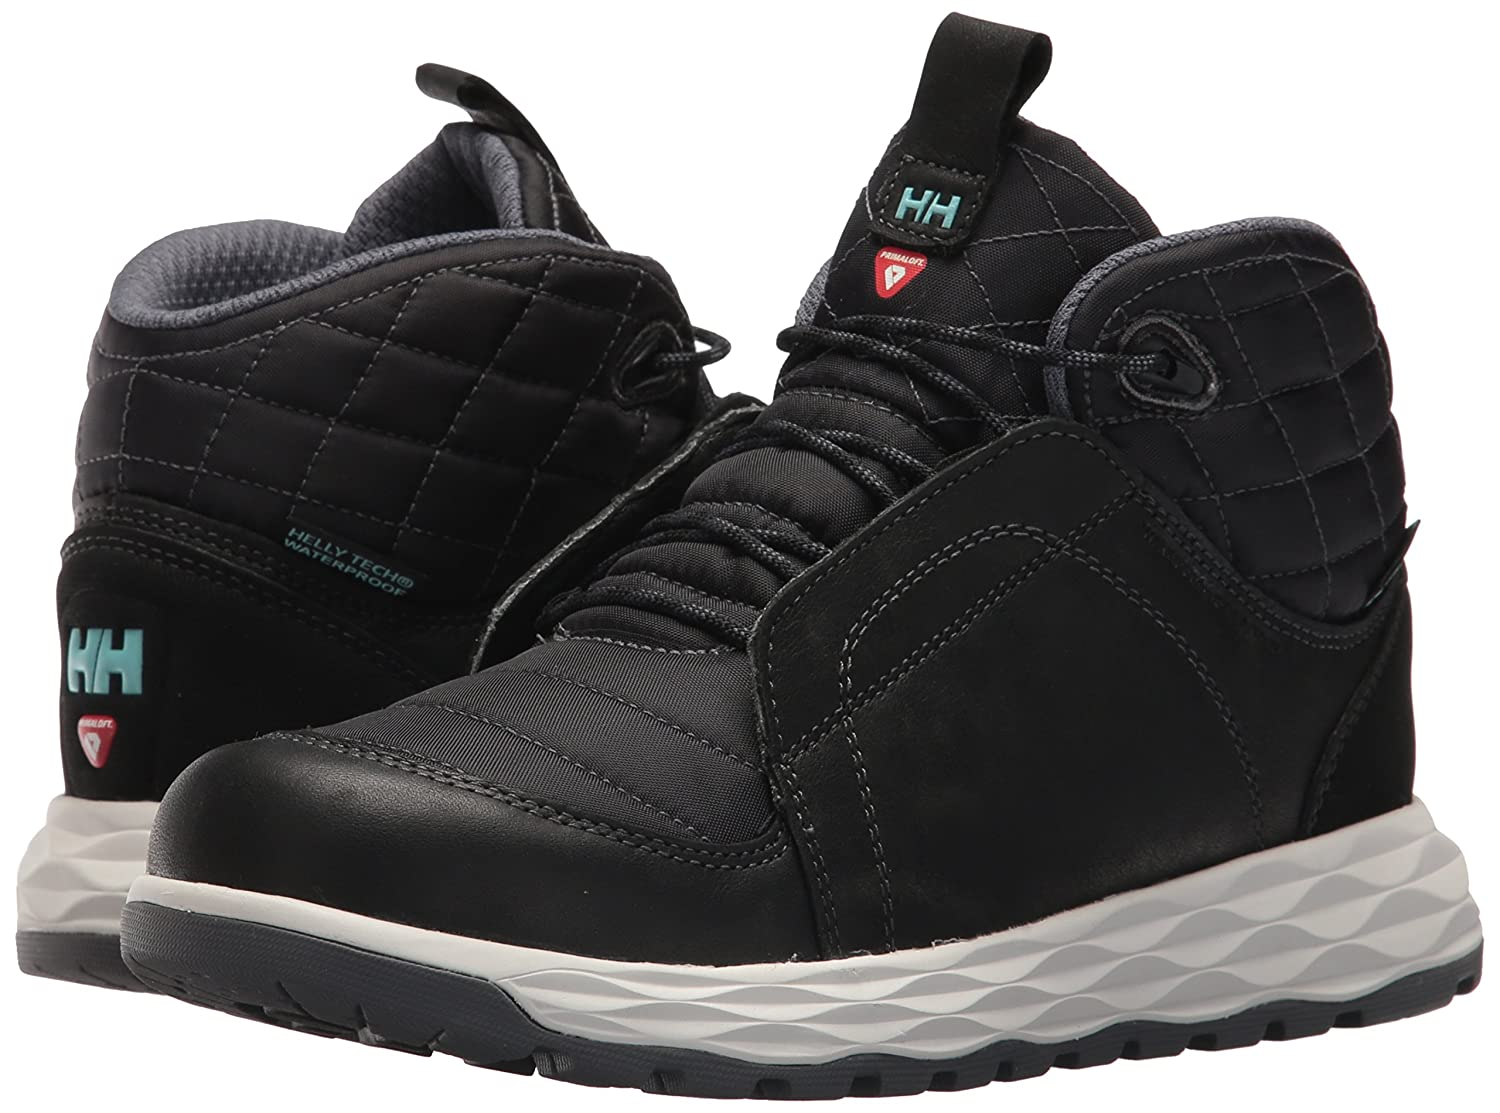 Helly Hansen Women's Ten-Below HT Insulated Winter Sneaker B01MUVGJR4 6 B(M) US|Black/Charcoal/Glacier